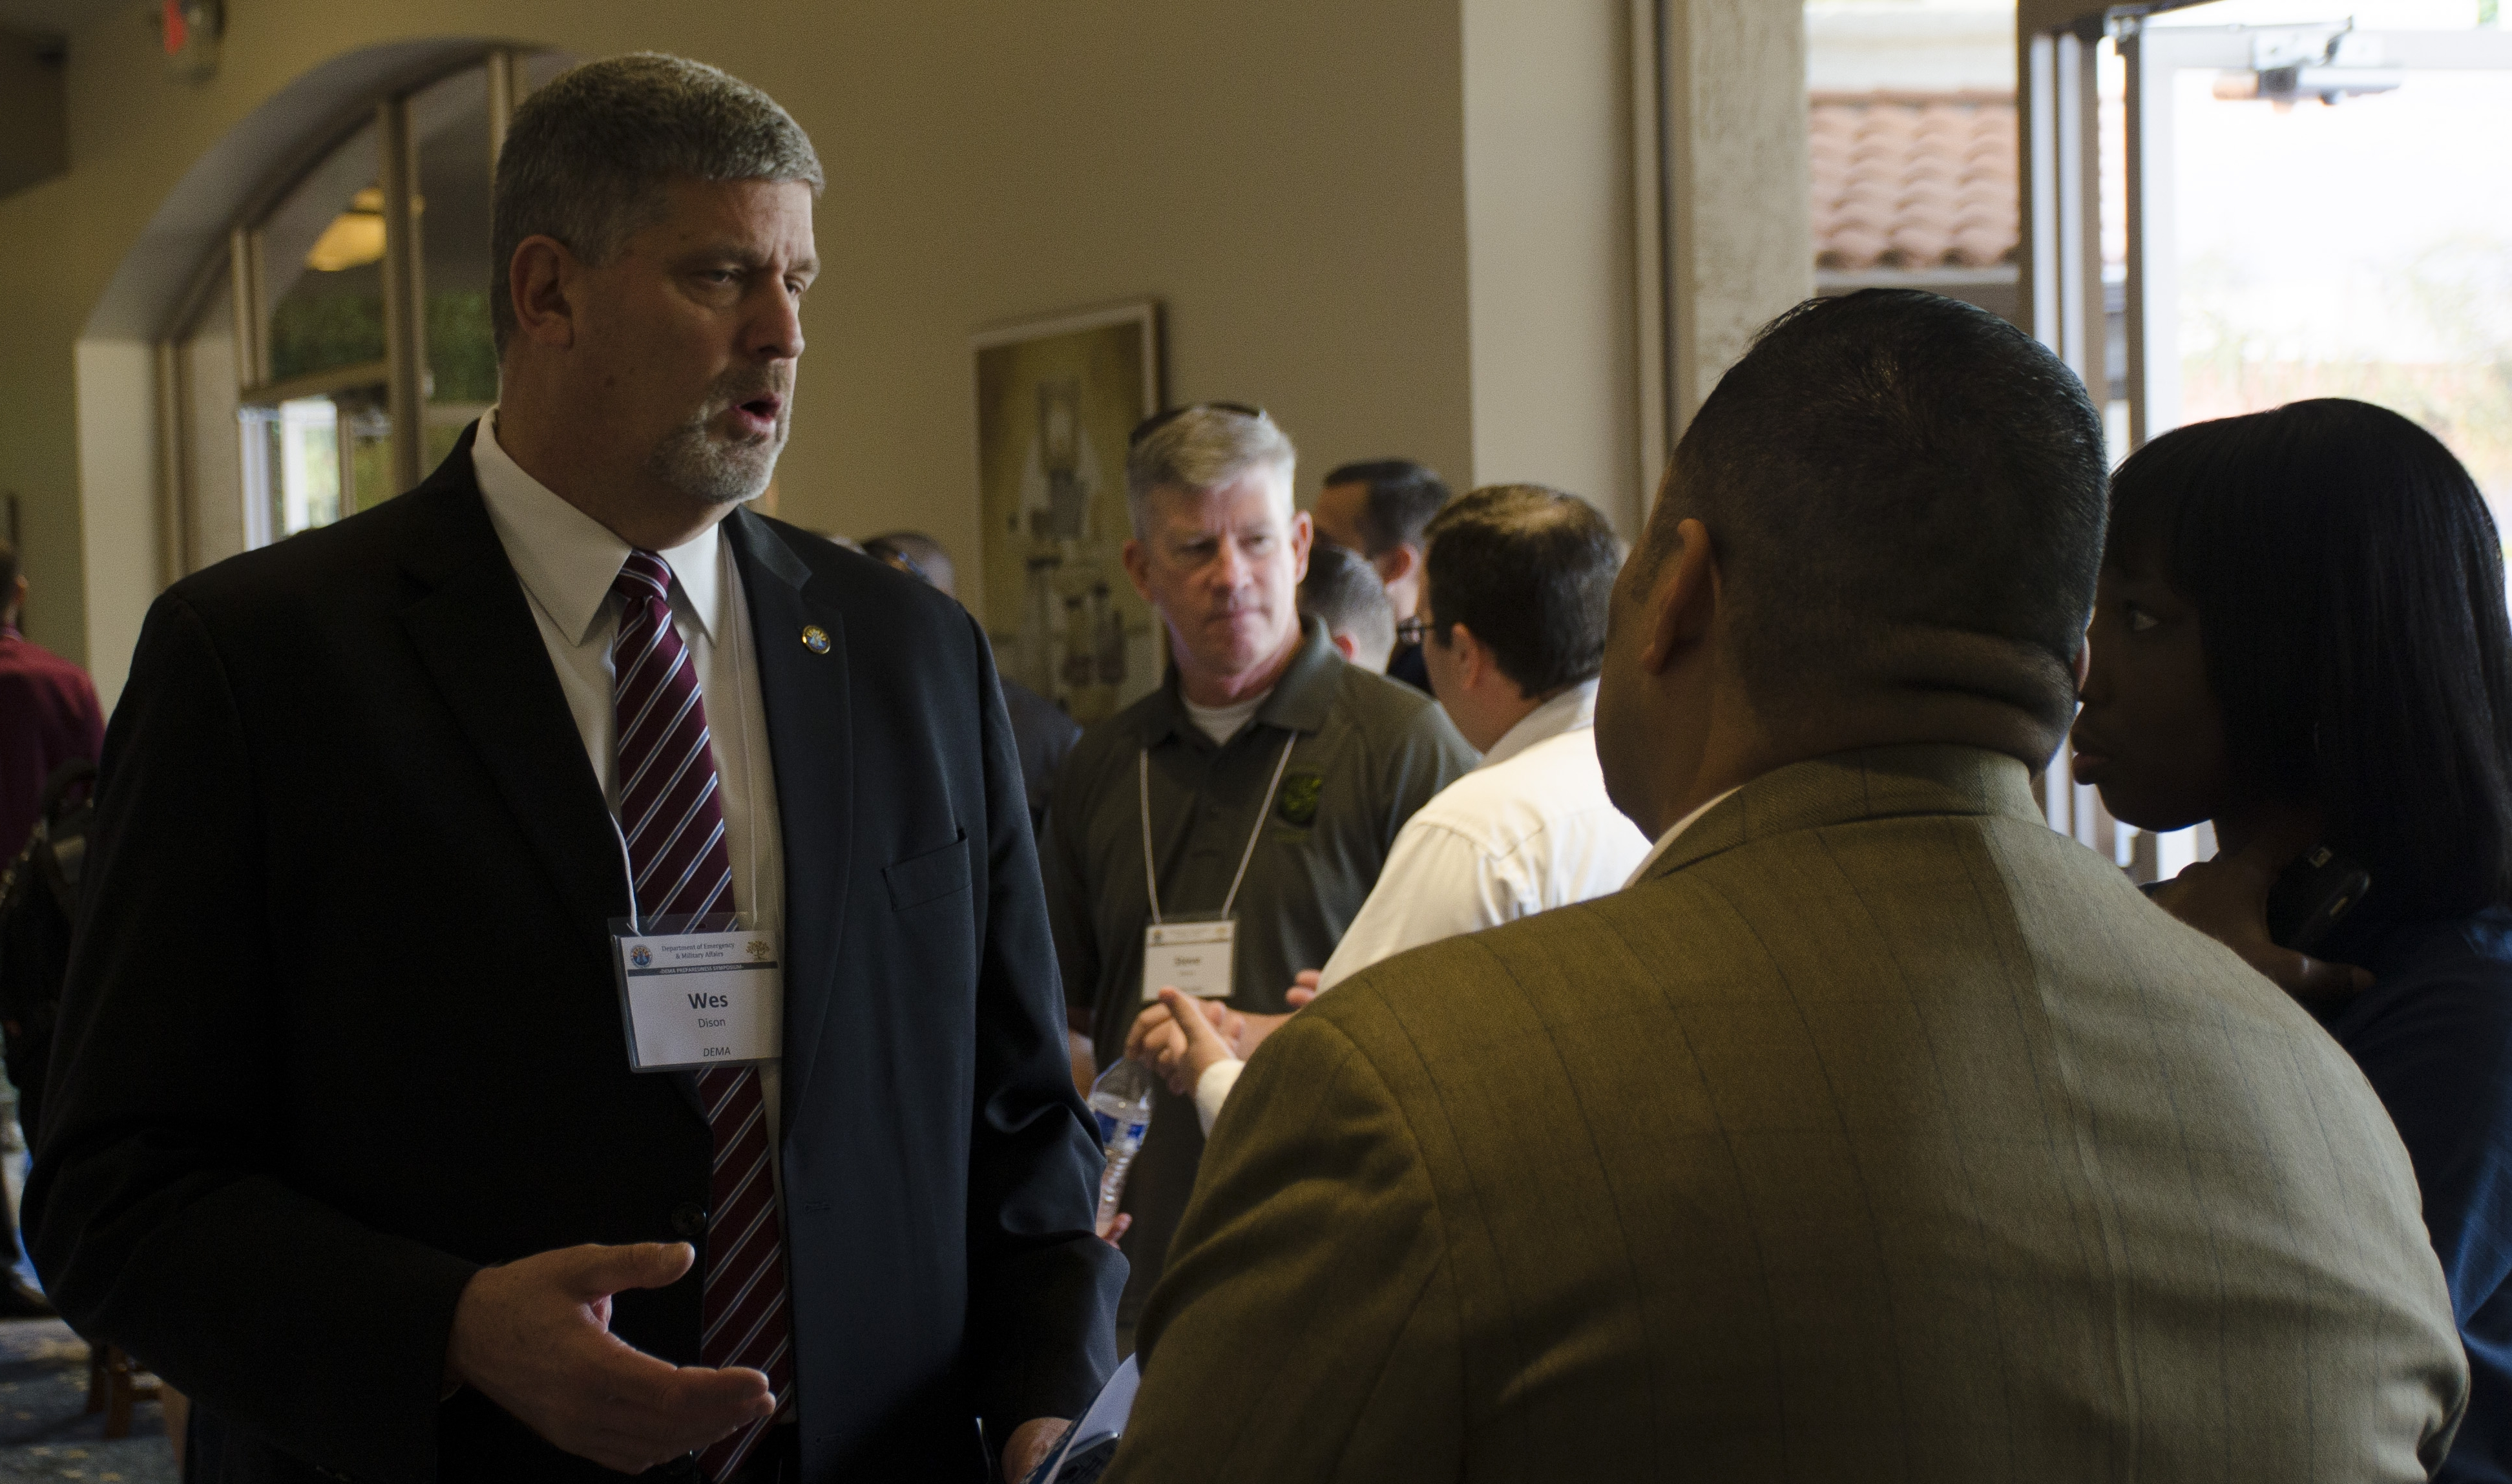 Emergency Management professionals stading and talking in a group during a conference.